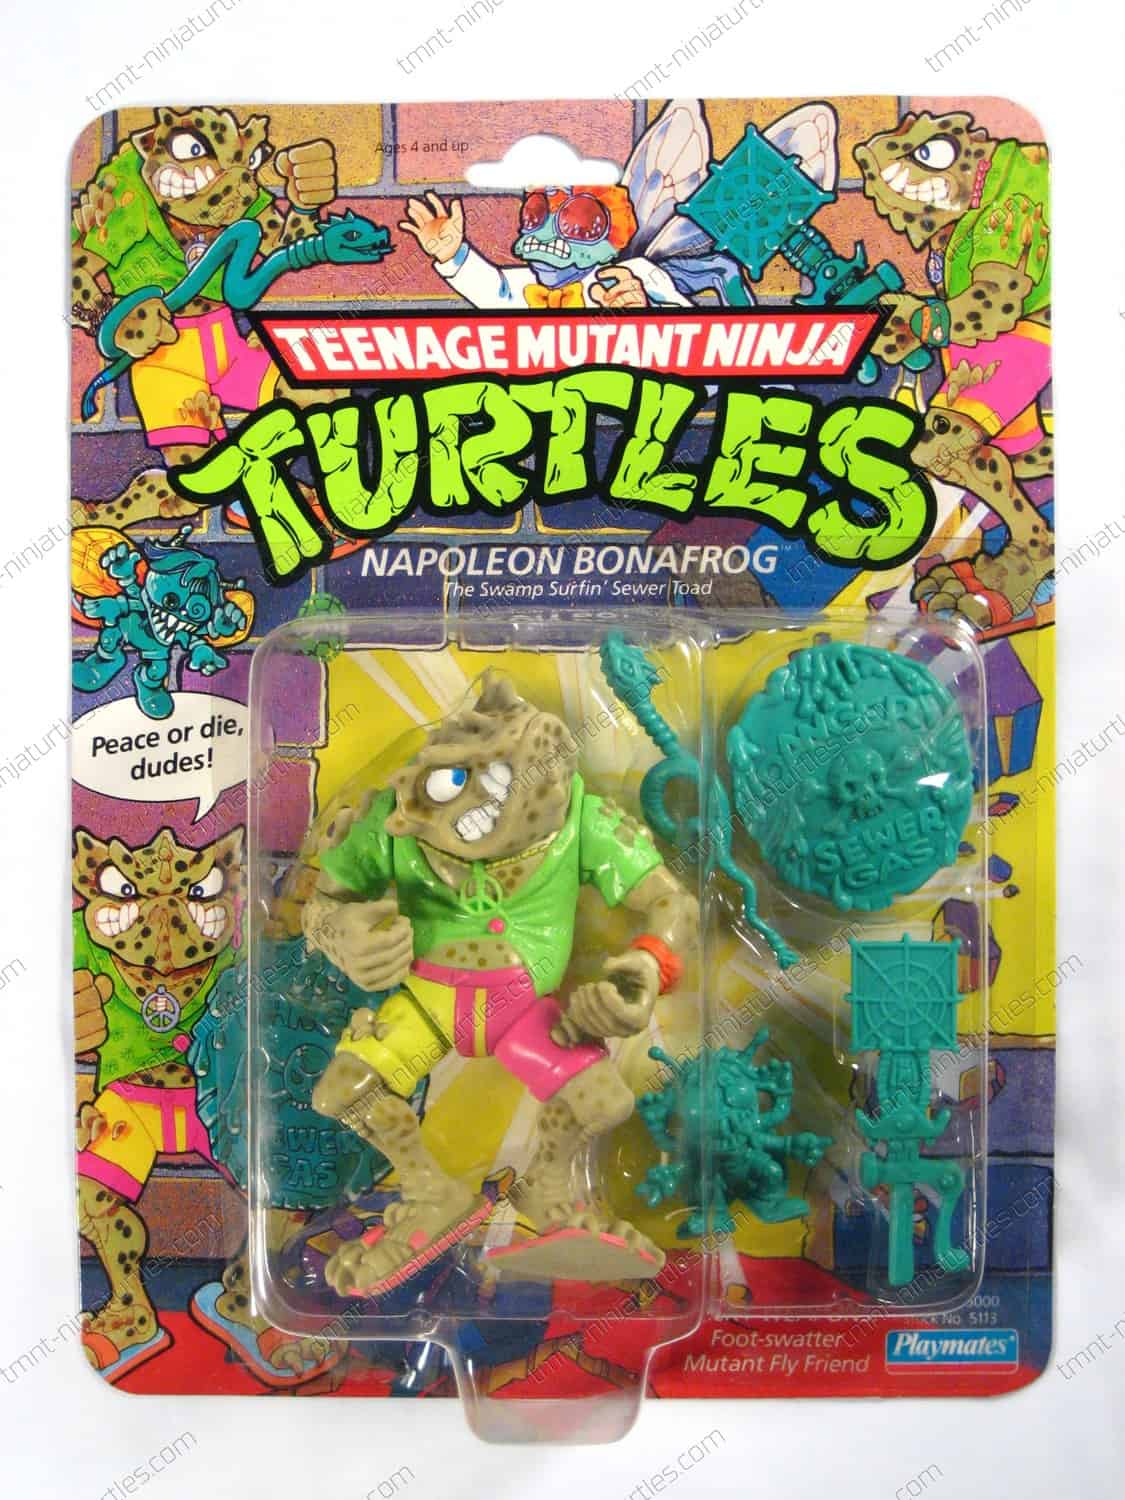 TMNT TEENAGE MUTANT NINJA TURTLES   NAPOLEON BONAFROG